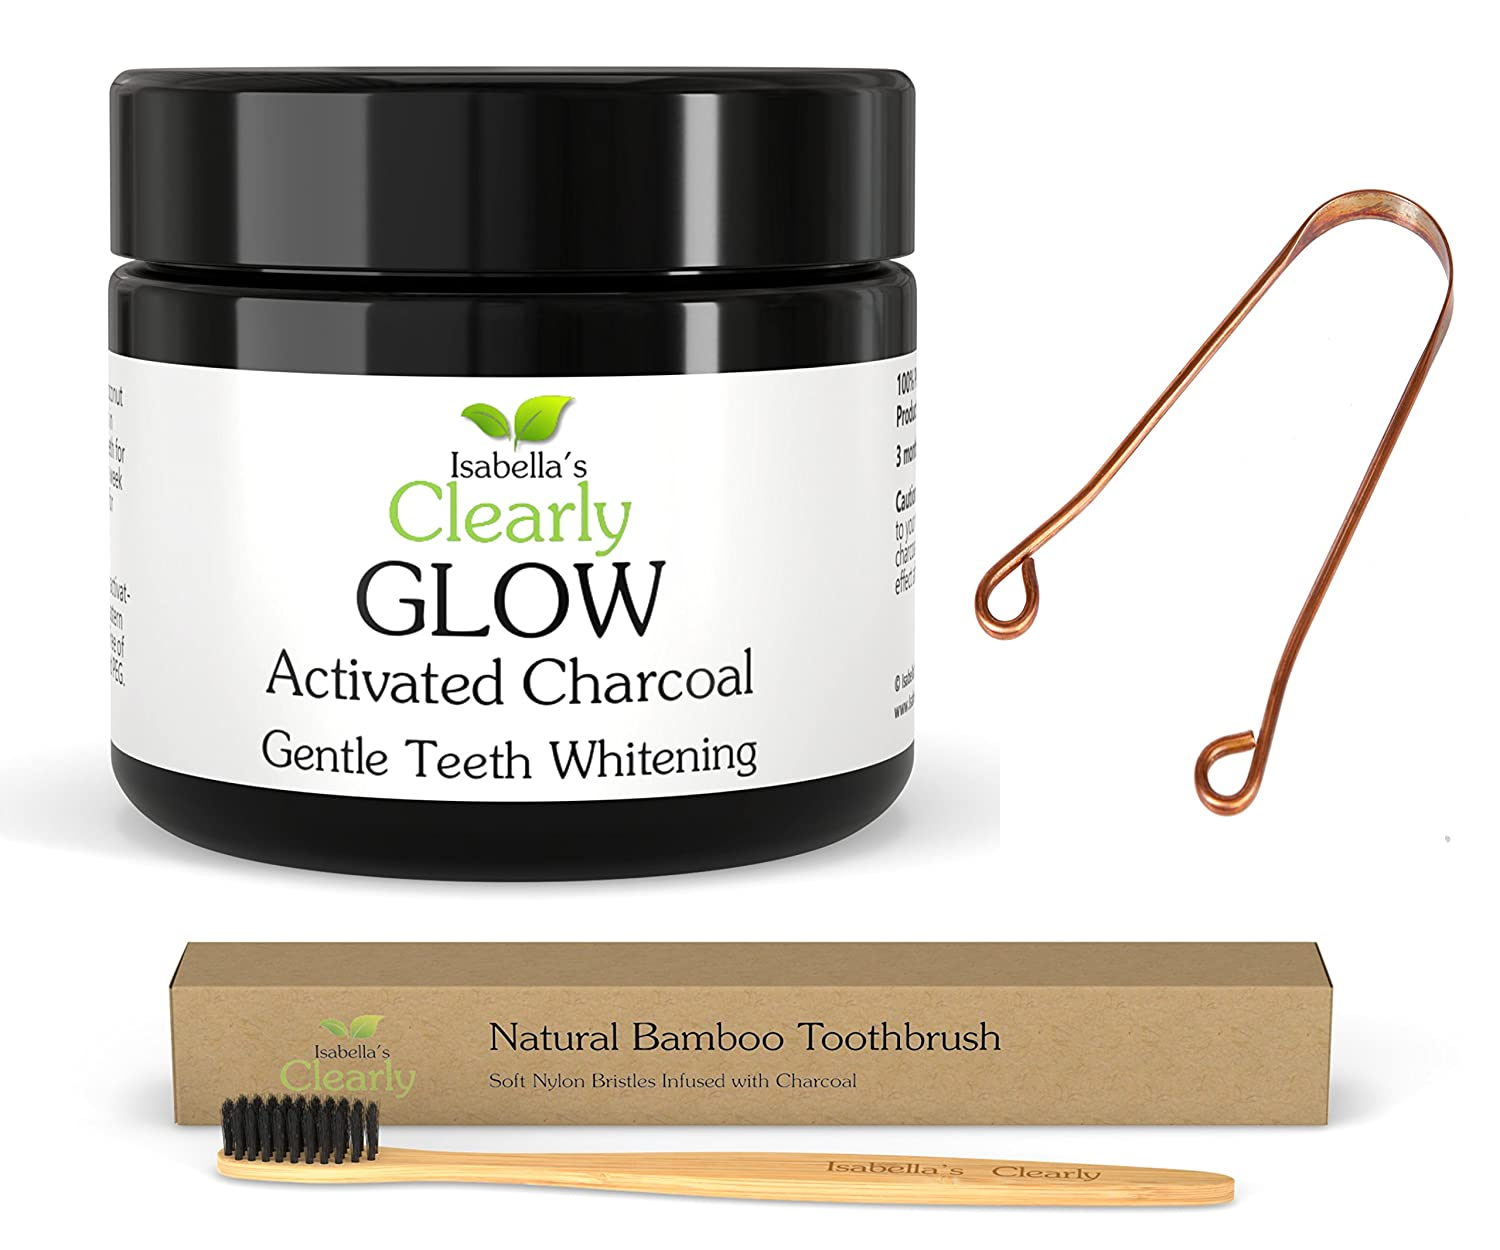 Isabella's Clearly Oral Care 4-Piece Kit - GLOW Teeth Whitening Activated Charcoal + BAMBOO Soft Toothbrush with Charcoal Infused Bristles + COPPER Tongue Scraper + Reusable Eco-Friendly Gift Bag. Natural, Food-Grade, Non-GMO, BPA Free. Isabella' s Cle